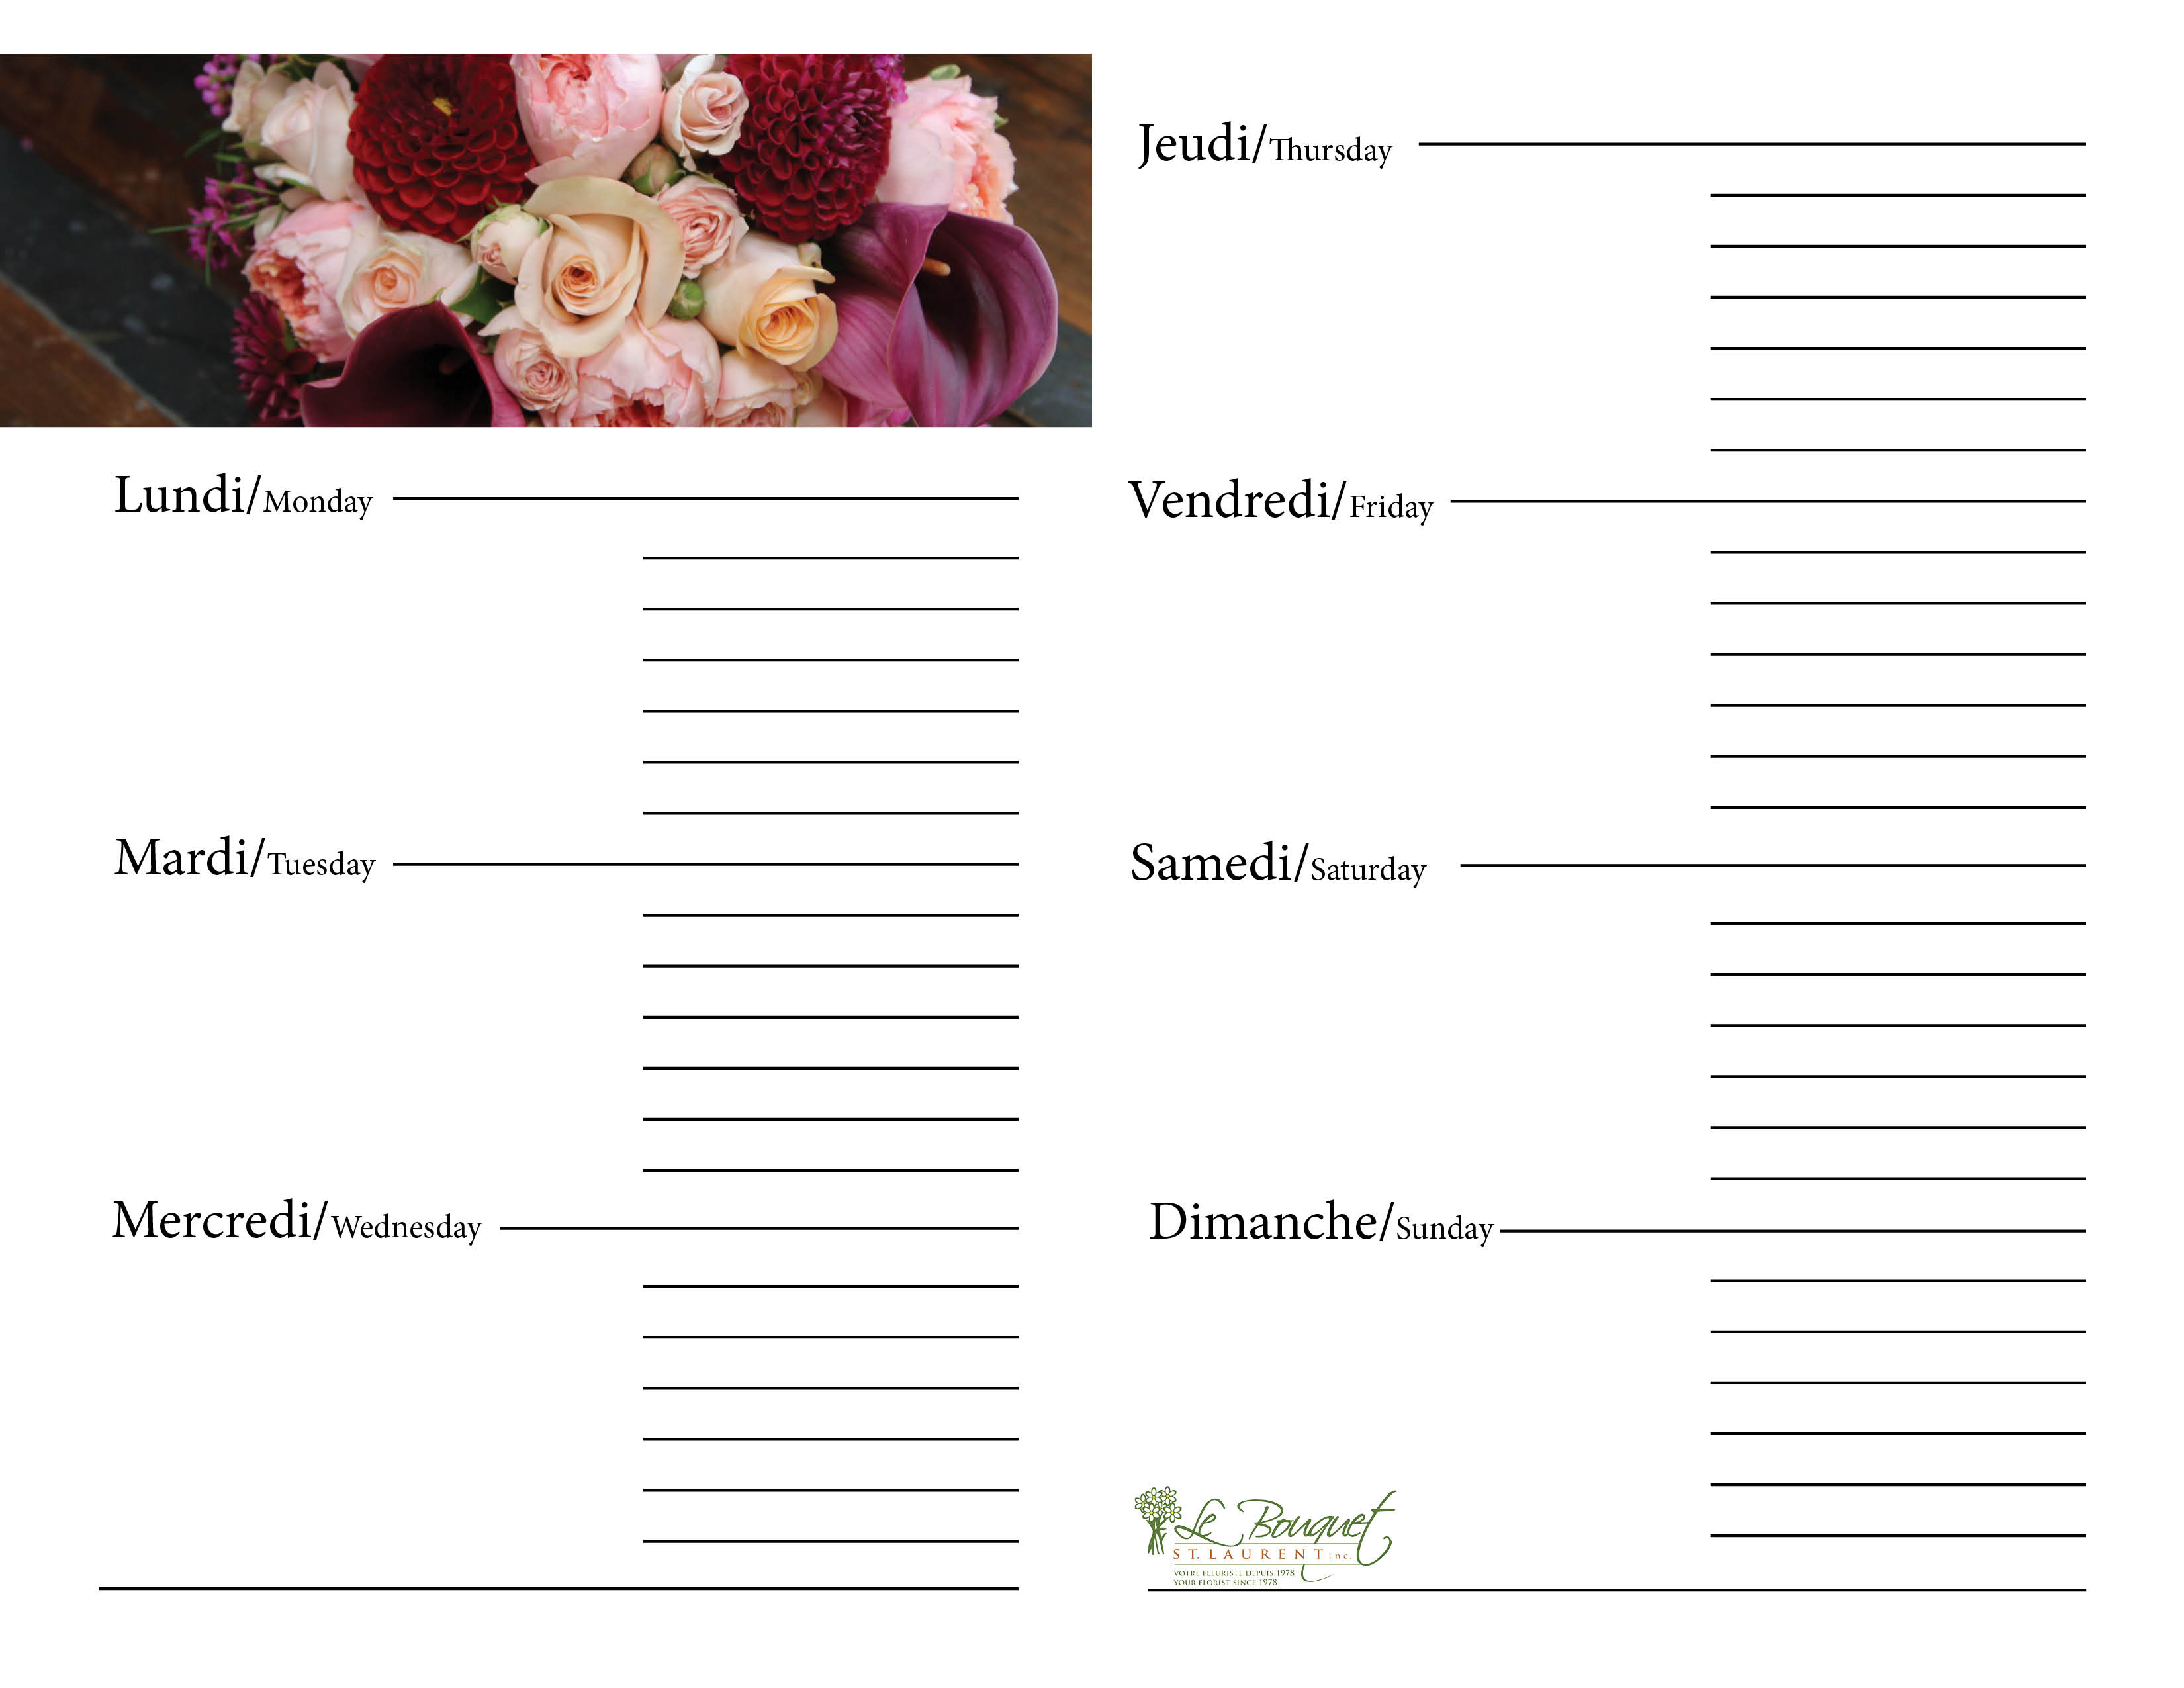 Free downloadable calendar journal with red dahlias from Montreal flower shop Le Bouquet St Laurent